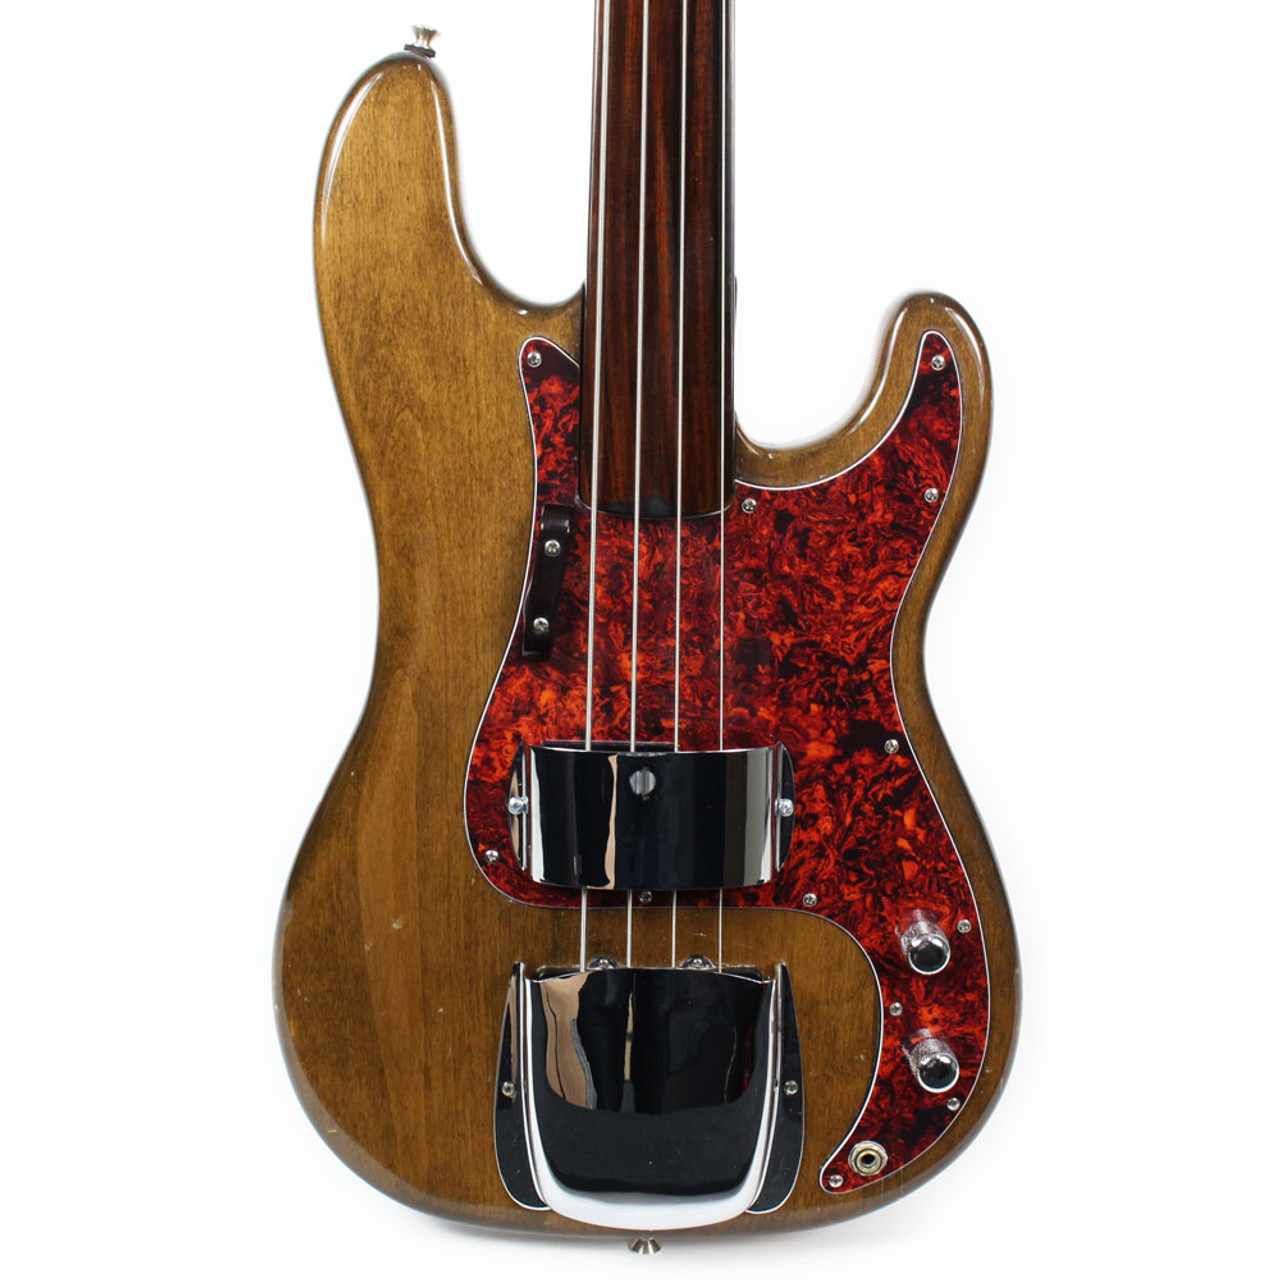 Vintage 1971 Fender Fretless Precision Bass P Bass Guitar Refinished